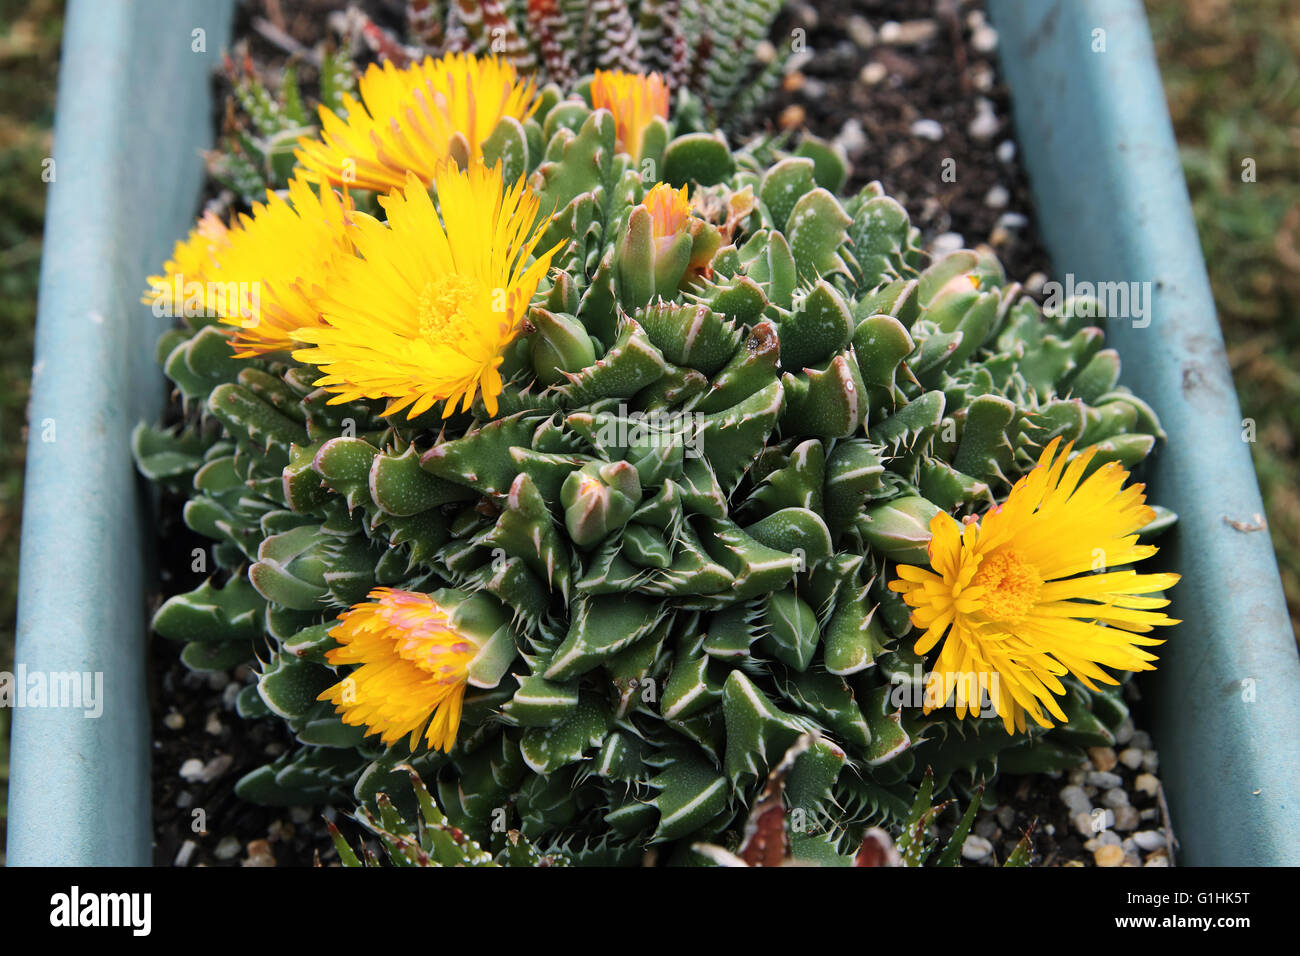 Tiger jaws succulent plant stock photos tiger jaws succulent plant tiger jaws succulent plant or known as faucaria tigrina with yellow flowers stock image mightylinksfo